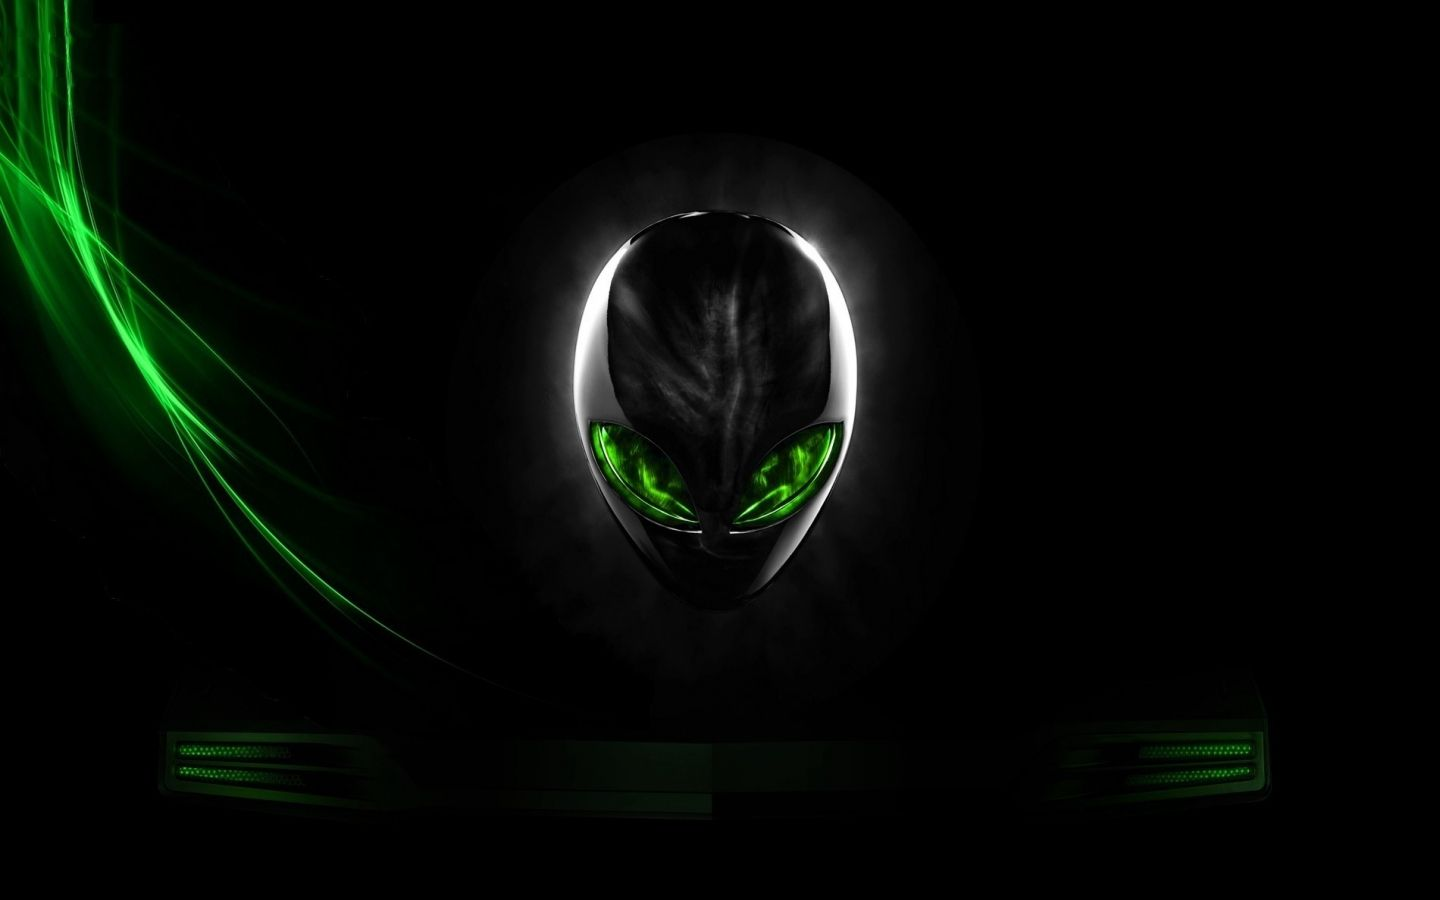 download 1900x1200 technology alienware wallpaper/background id